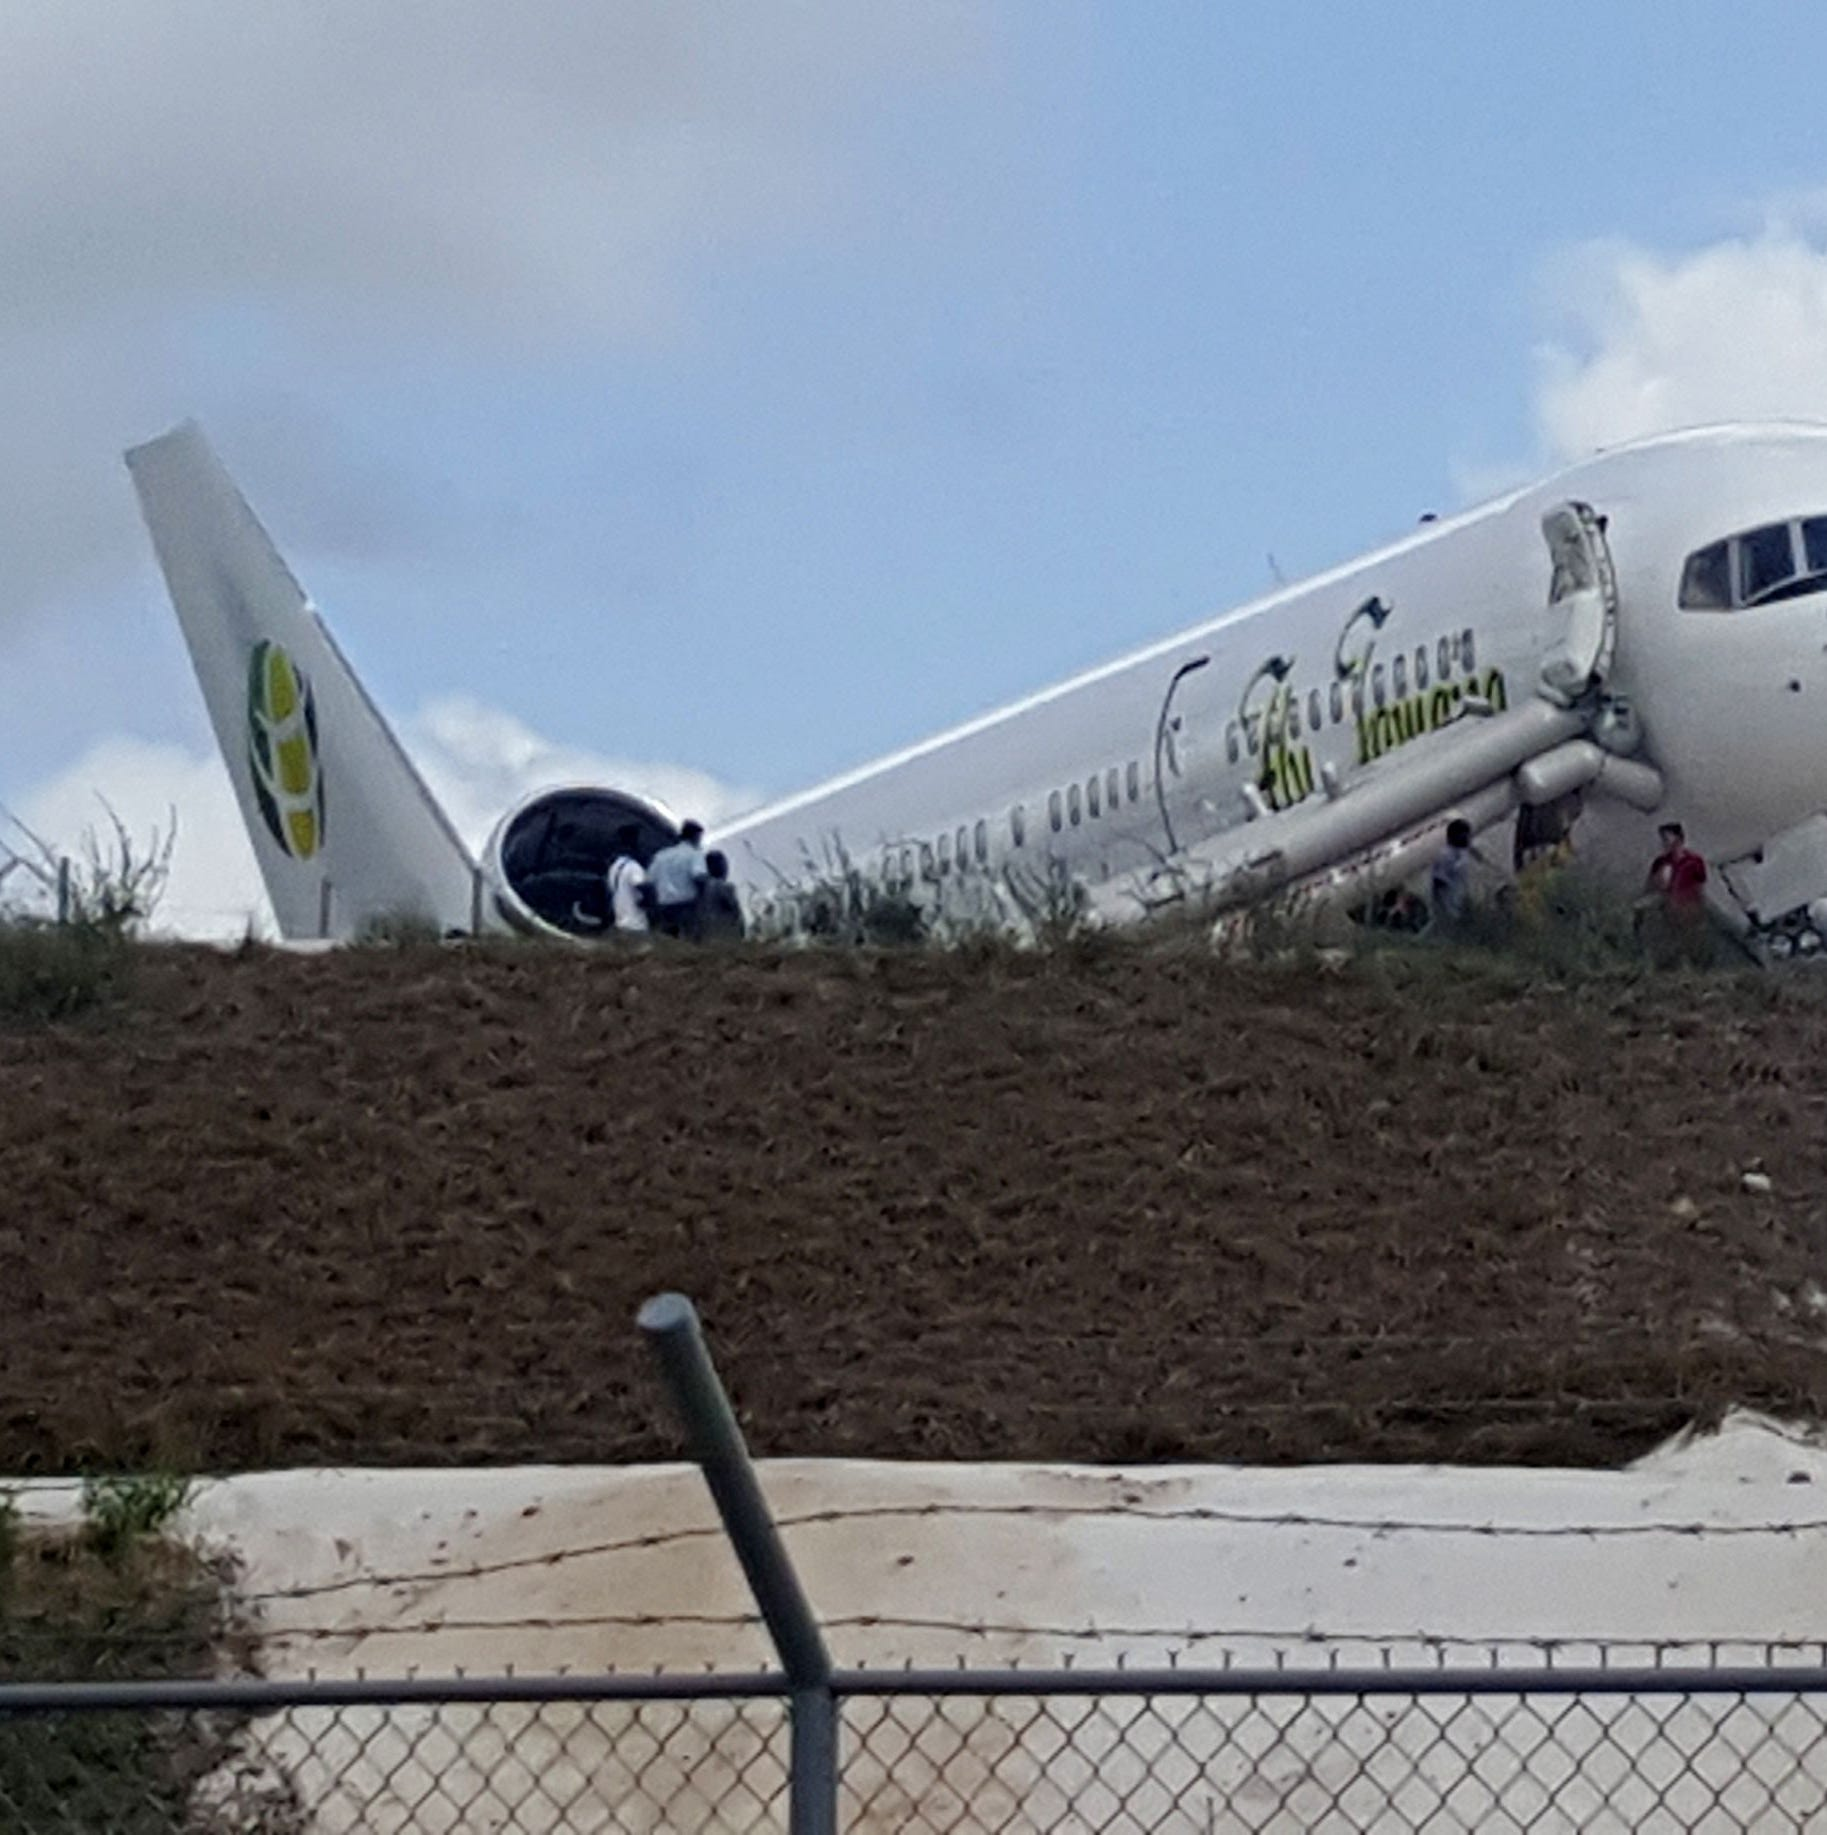 A Toronto-bound Fly Jamaica airplane is seen after crash-landing at the Cheddi Jagan International Airport in Georgetown, Guyana on Nov. 9, 2018.